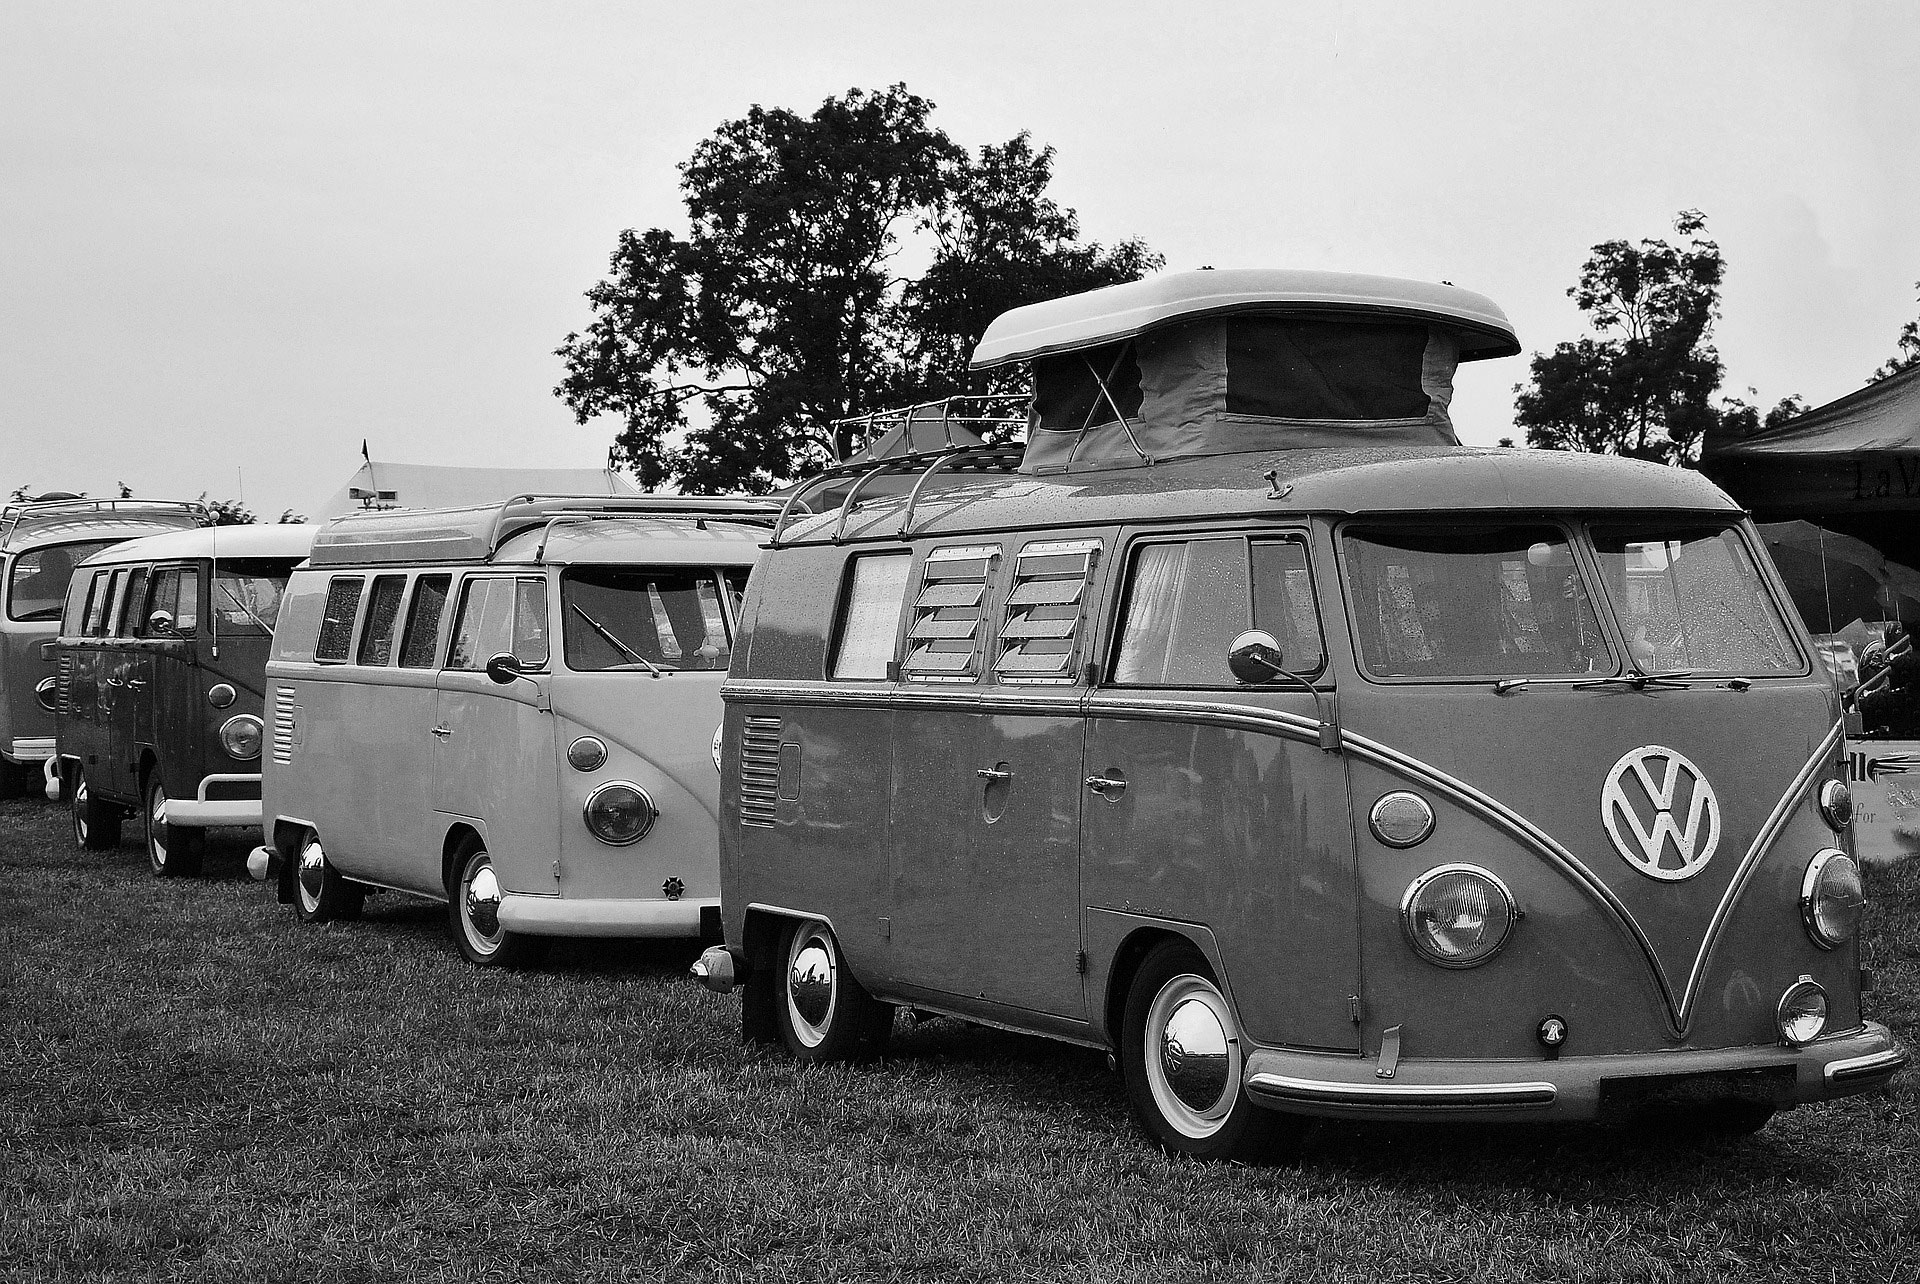 Stokers VW Camper